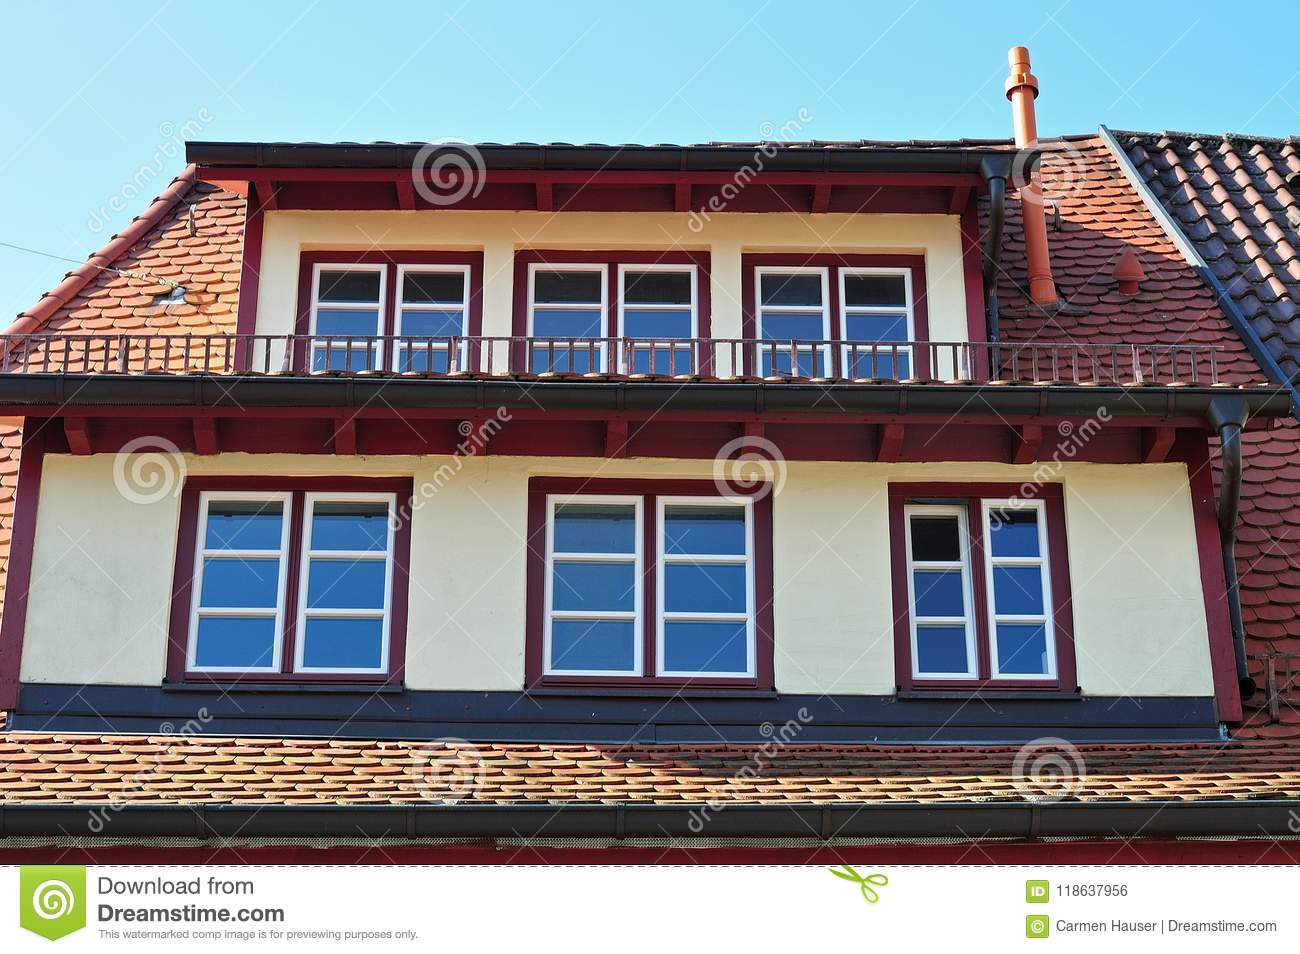 Roof With Mansard Windows Stock Photo Image Of Roof 118637956